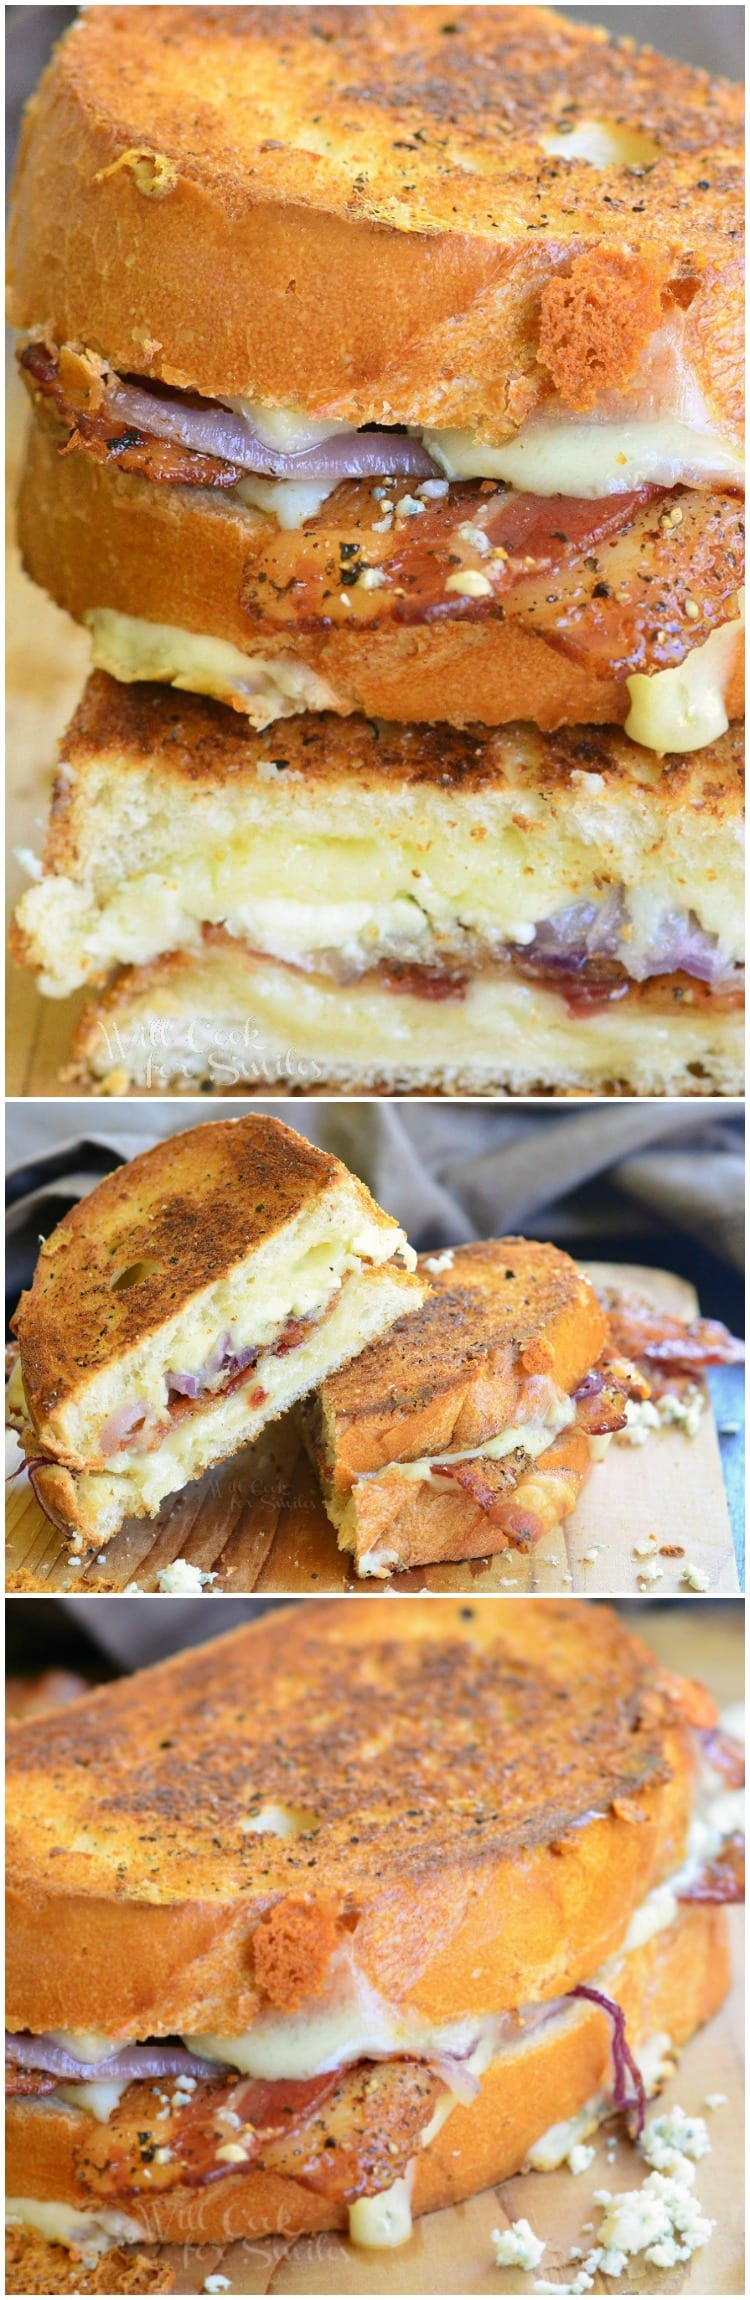 Grilled Cheese Sandwich With Bacon And Pear Recipe — Dishmaps